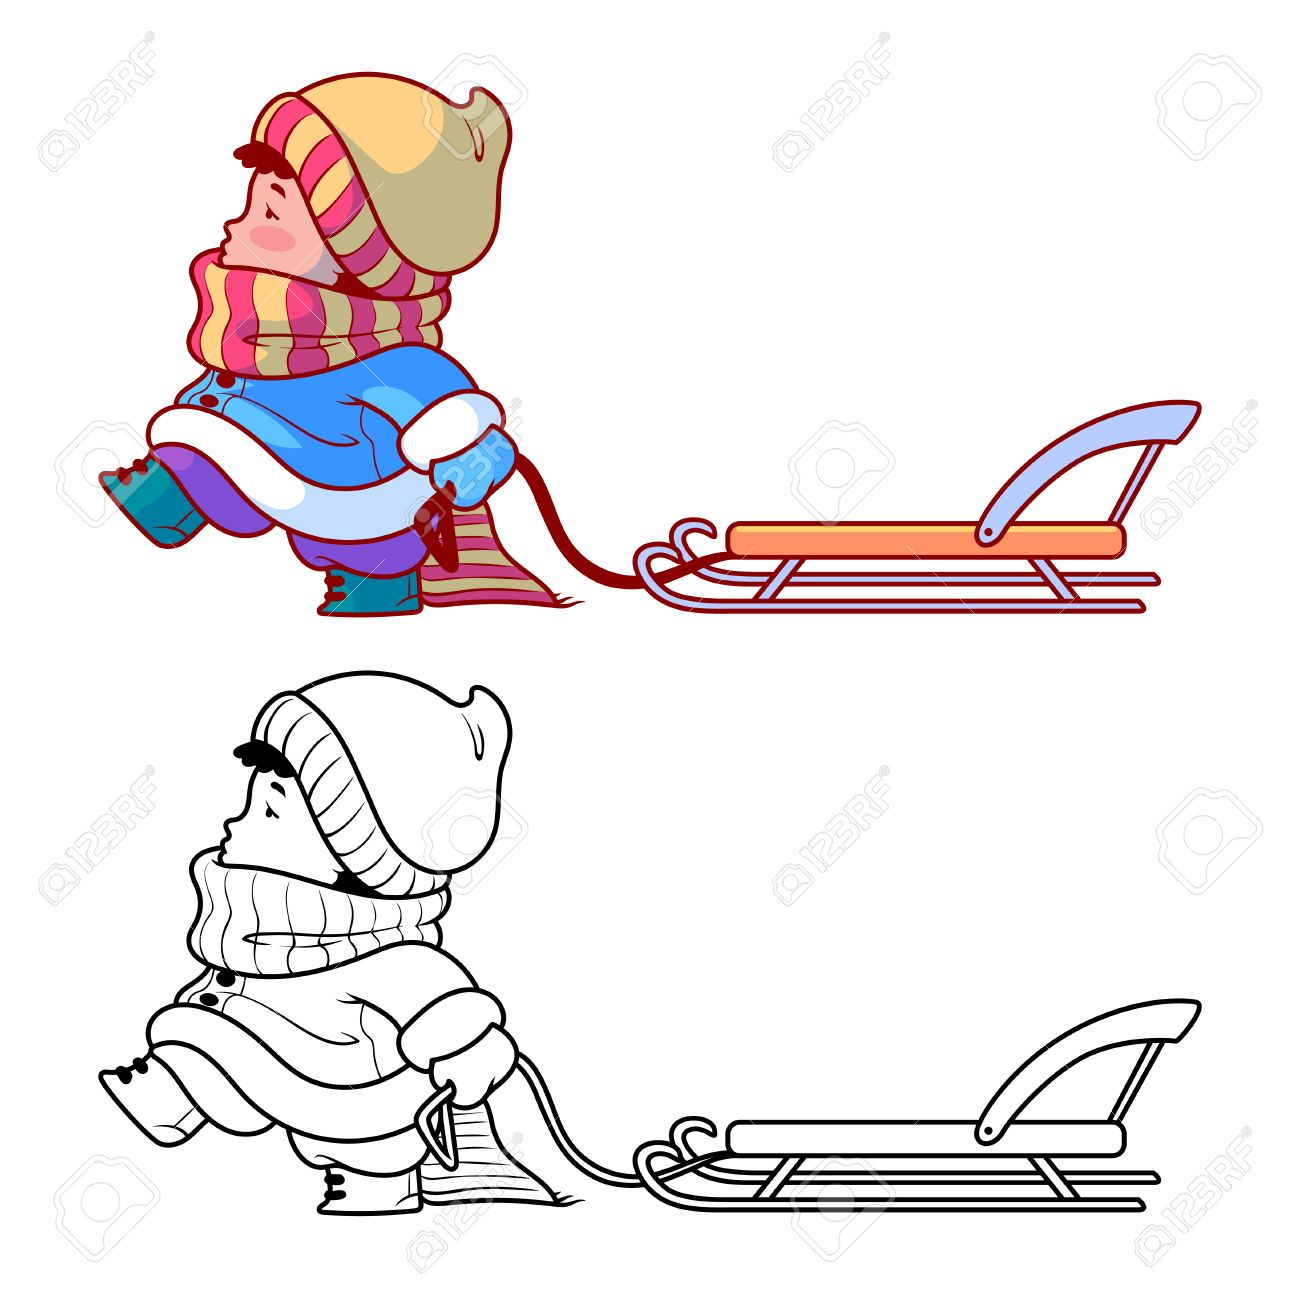 kid walking with a sled winter holiday cute cartoon character rh 123rf com  winter holiday clip art pictures